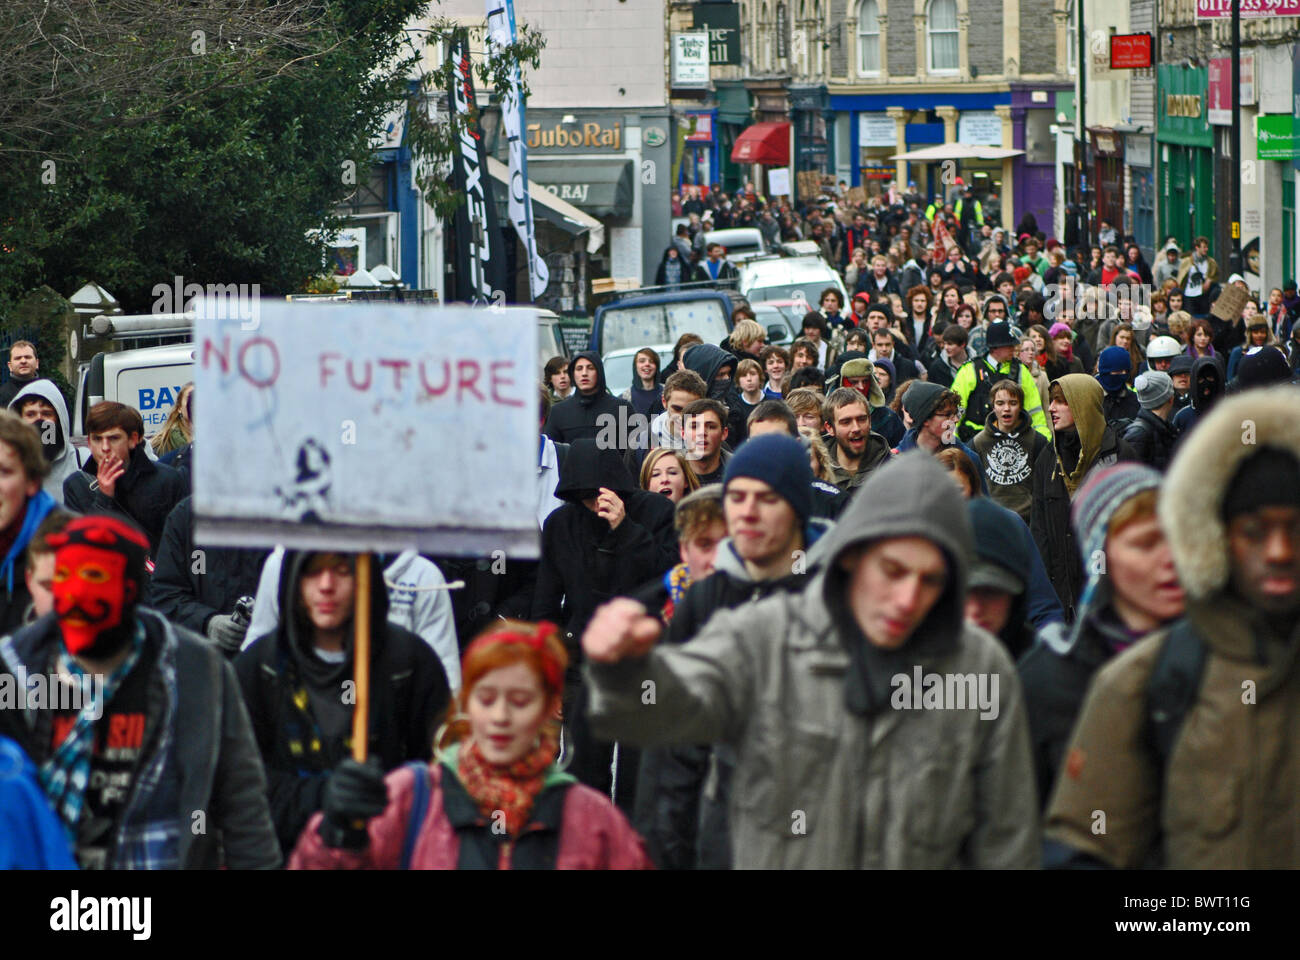 Students at Bristol University protest against rising tuition fees - Stock Image